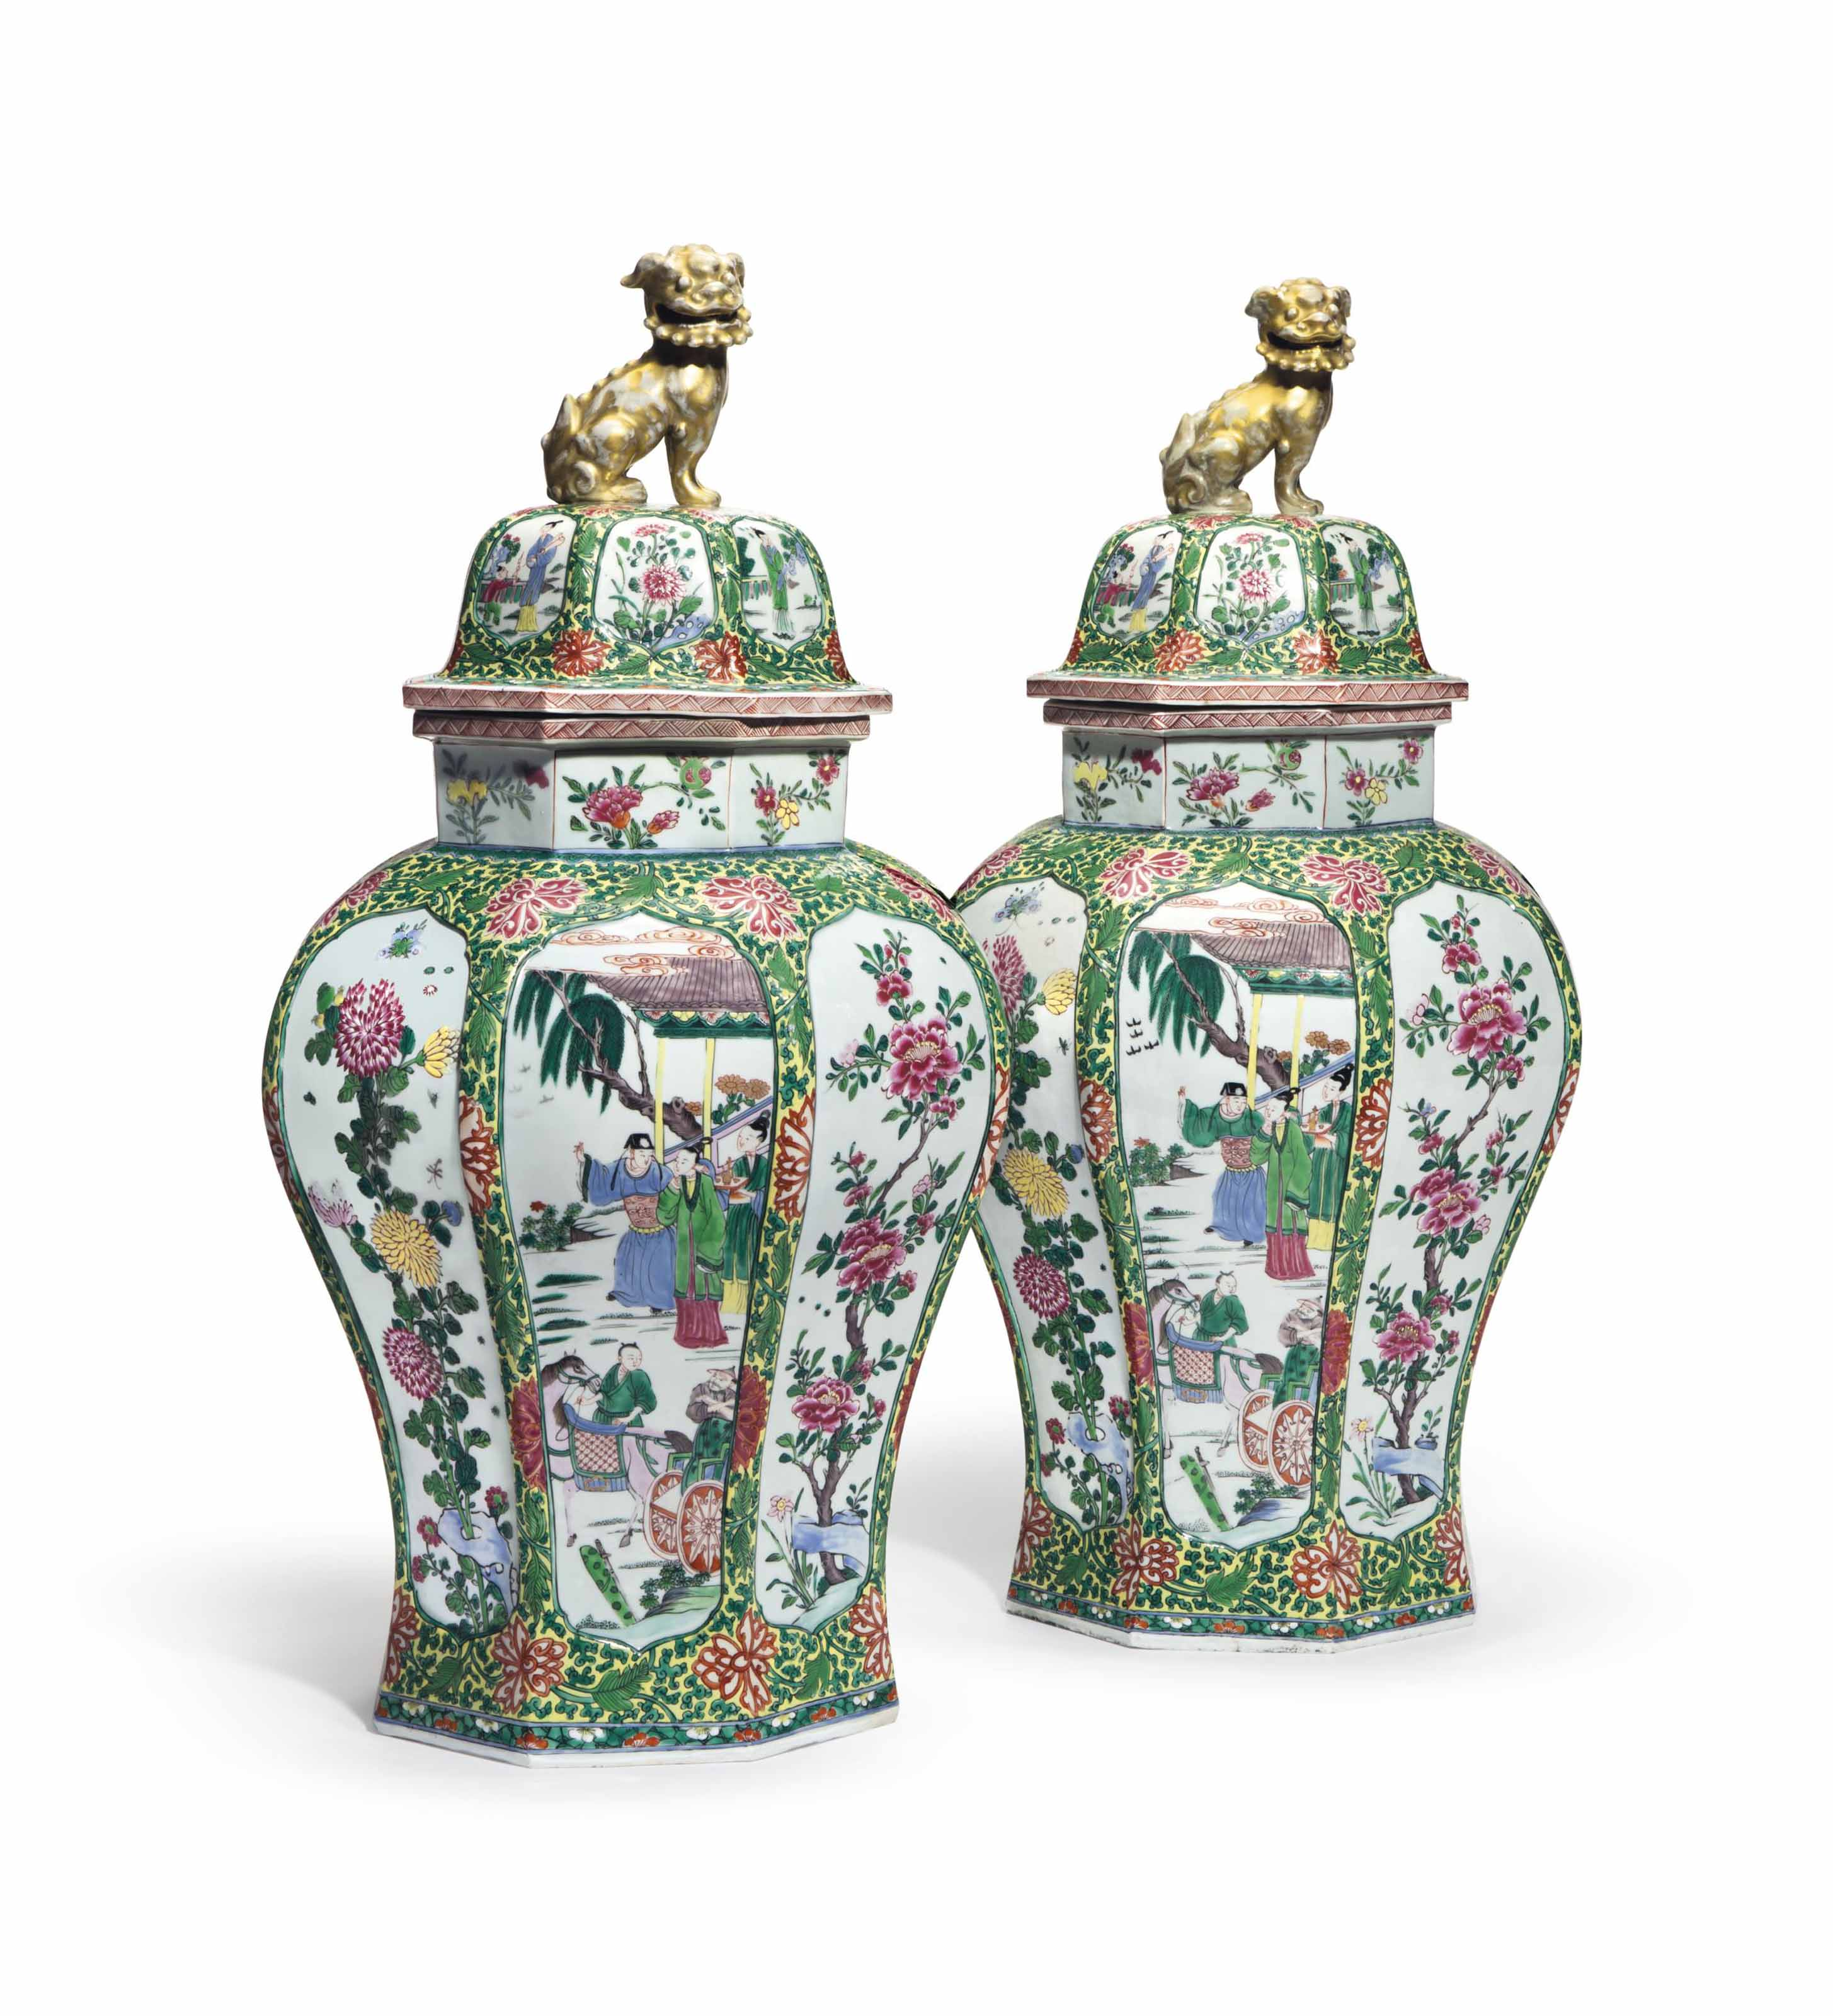 A PAIR OF CHINESE EXPORT STYLE LARGE OCTAGONAL JARS AND COVERS